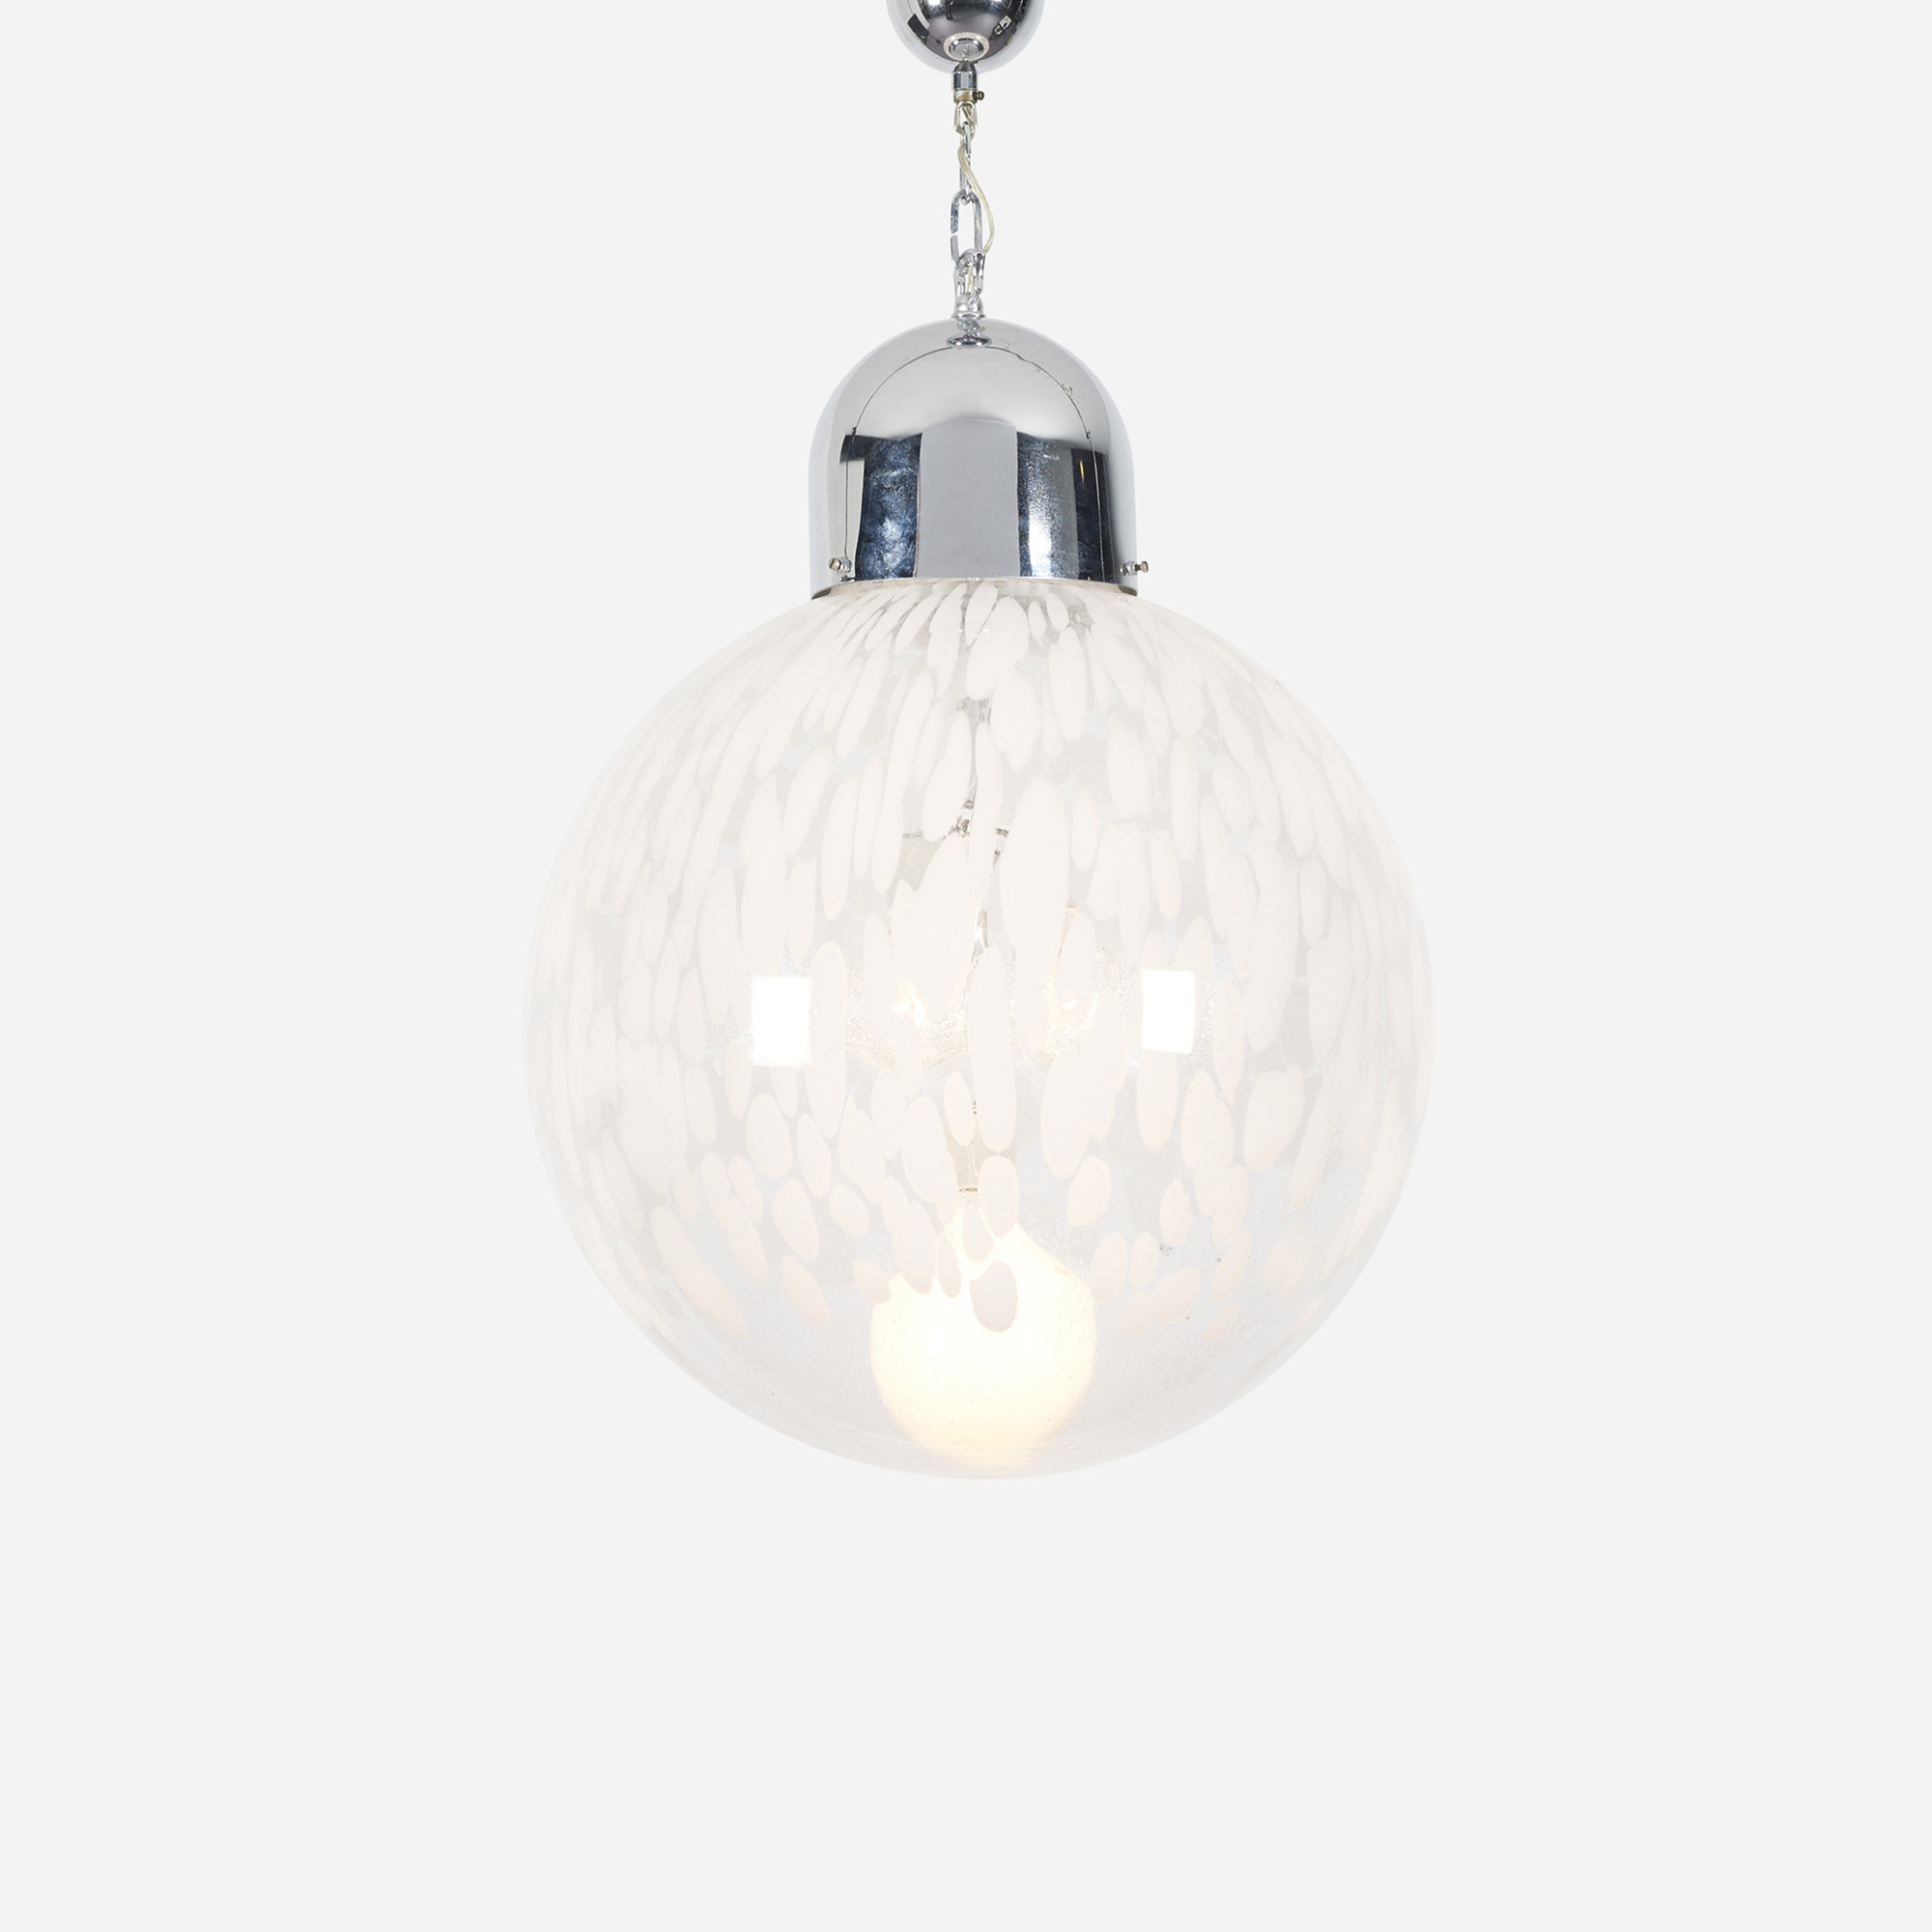 624: Murano / pendant lamp (1 of 1)